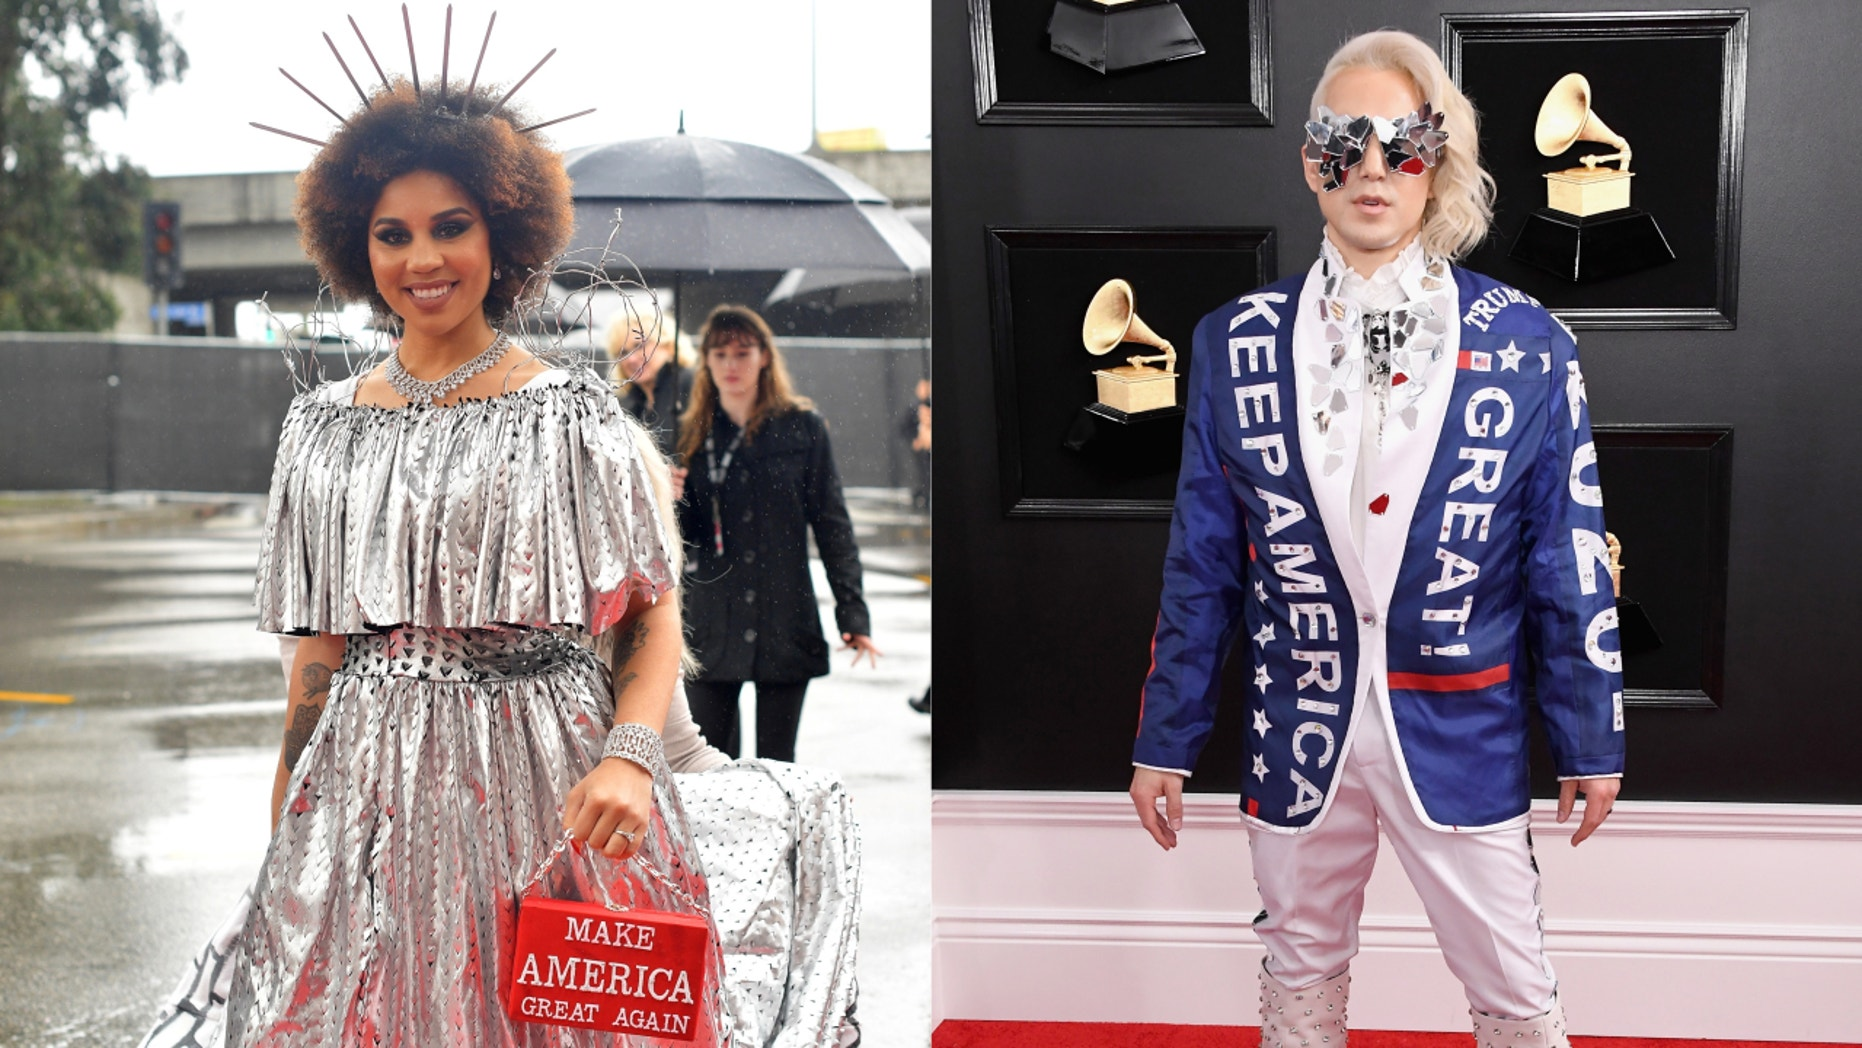 Singers Wear Their Pro-Trump Fashions on Grammy Carpet